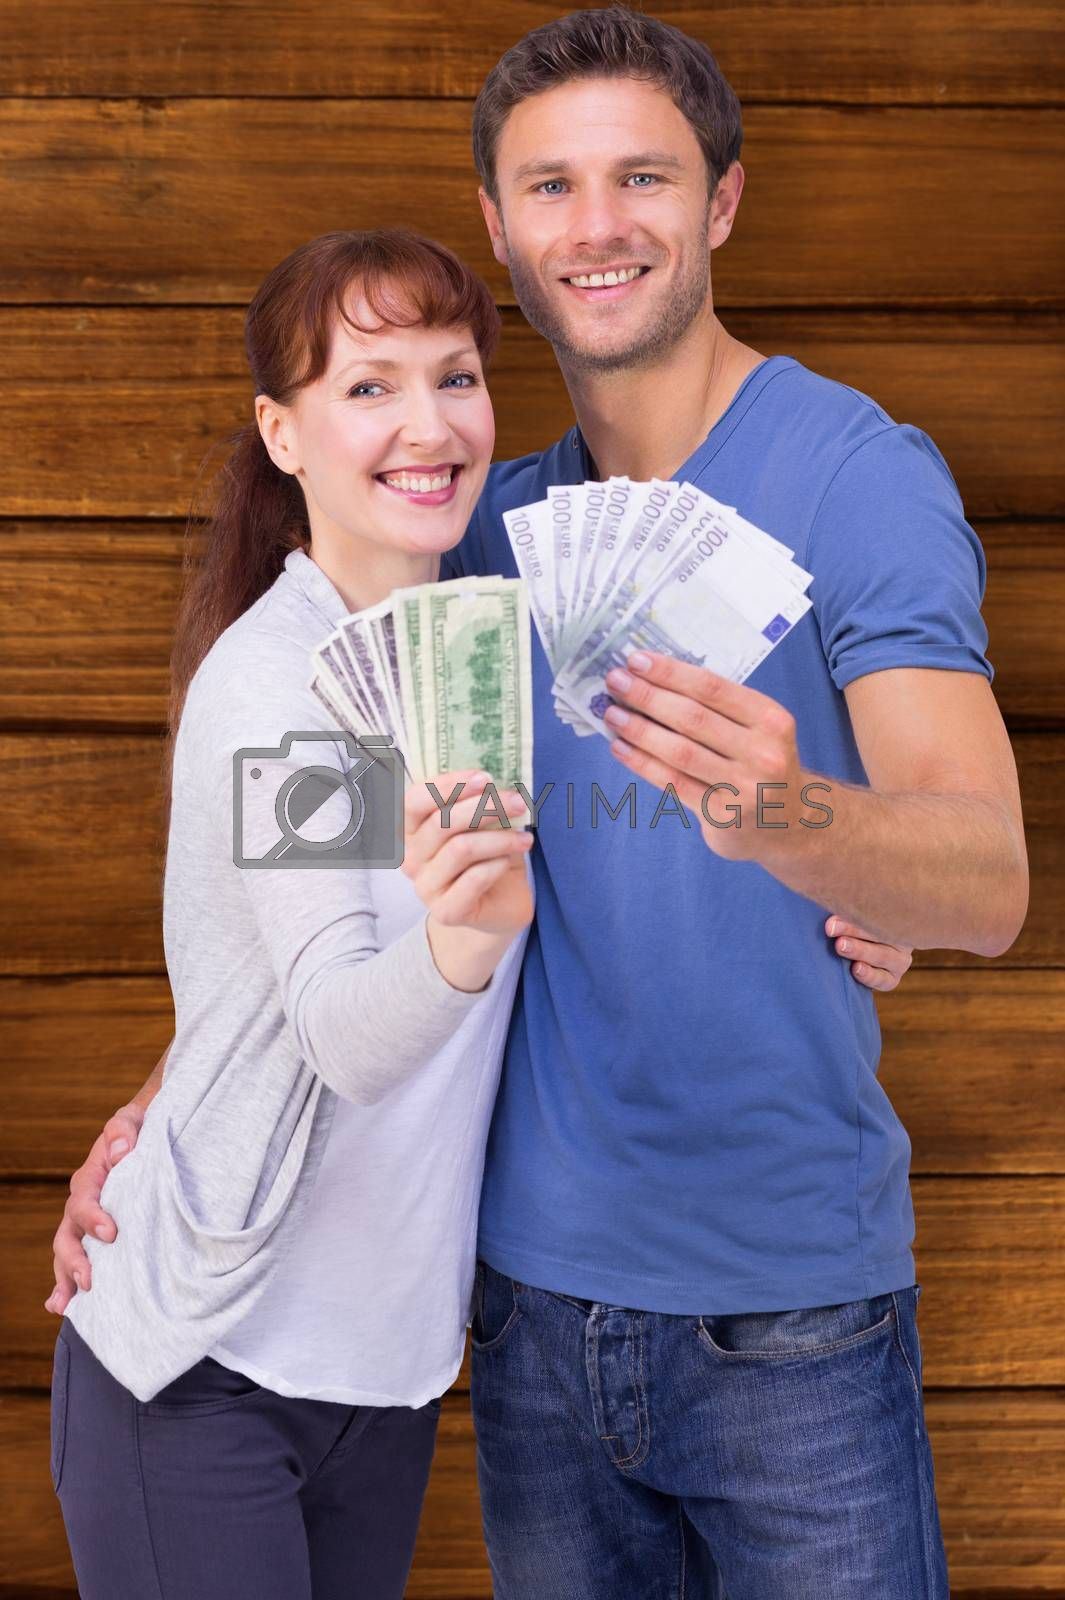 Couple holding fans of cash against wooden planks